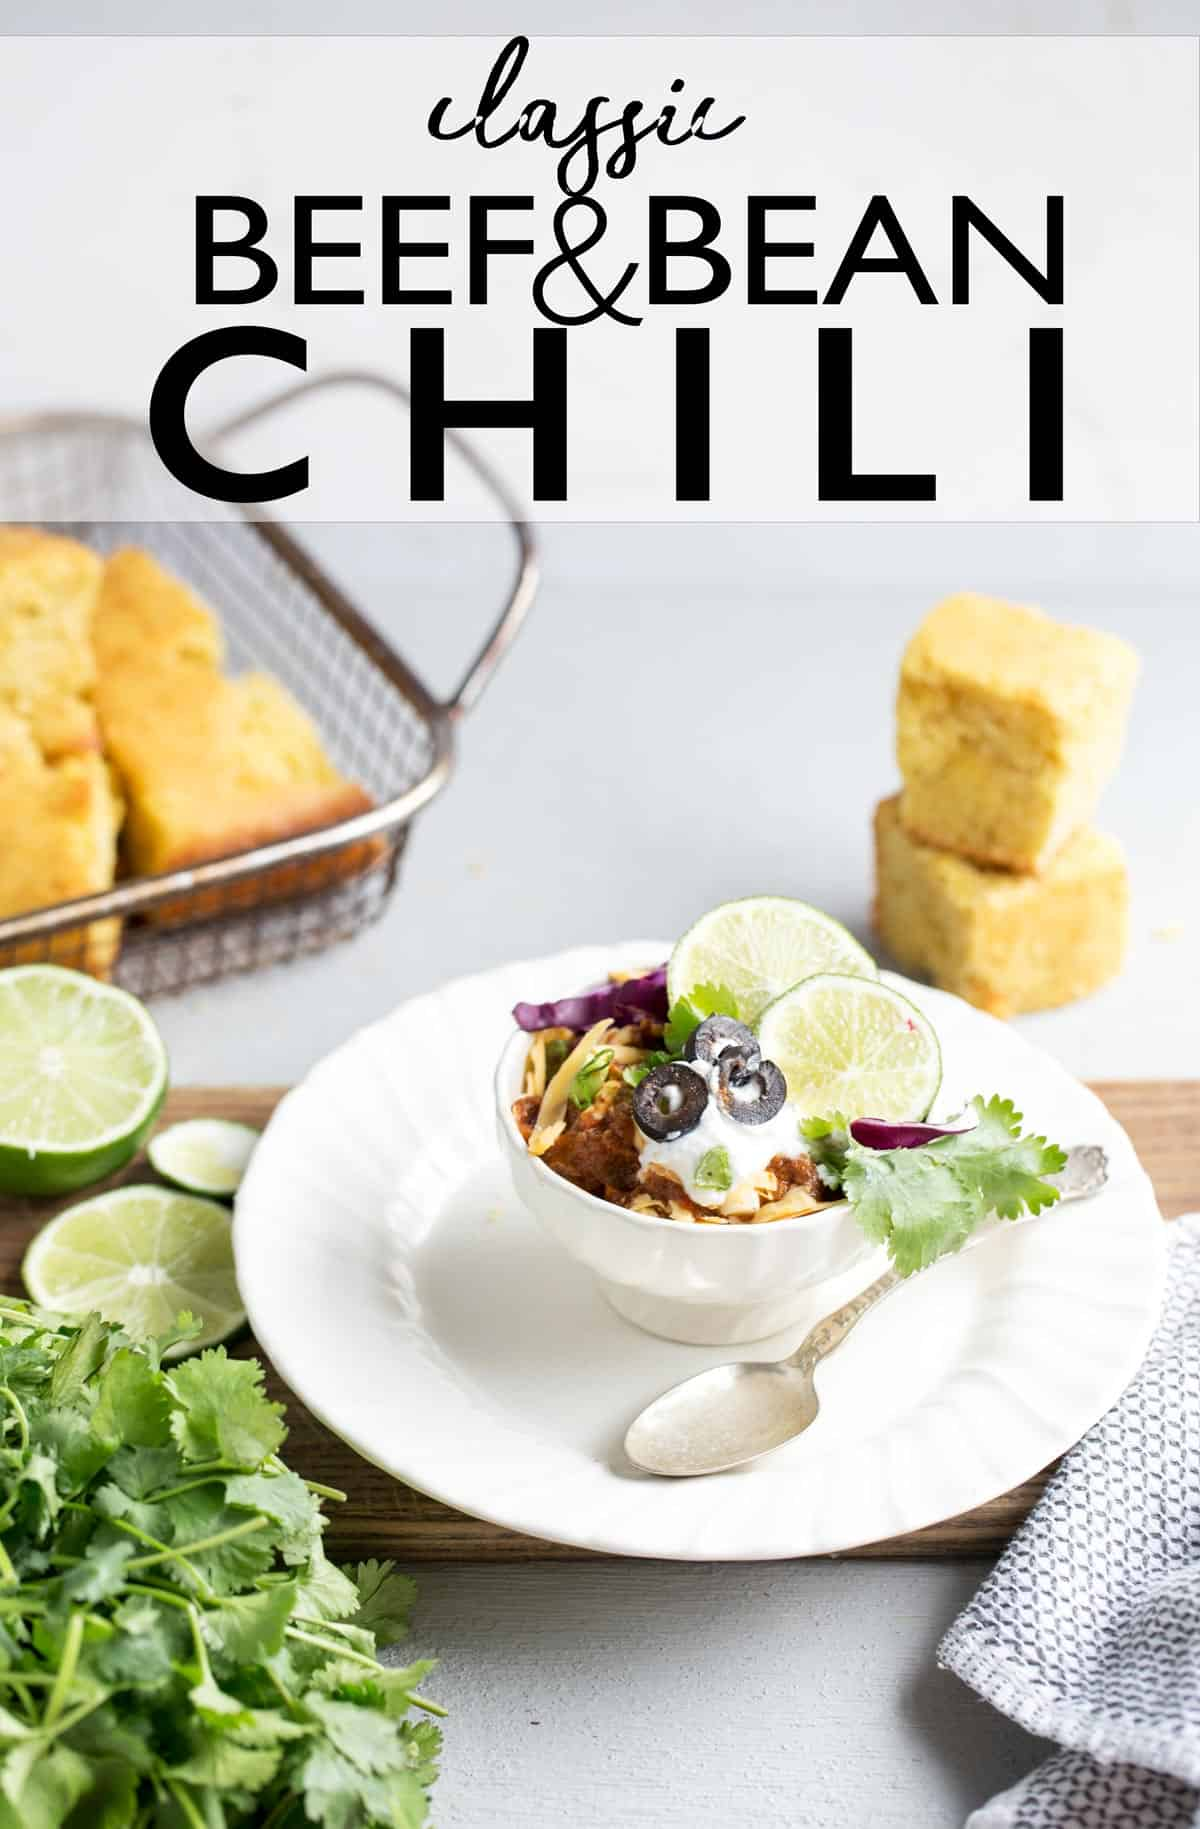 Classic American Beef and Bean Chili with Cornbread and Honey Butter gets it's deep rich smoky chili flavor from a slow stovetop simmer. Served buffet style with an assortment of toppings, it's a perfect meal to please the whole family friendly dinner or as a self service dinner at your next party!